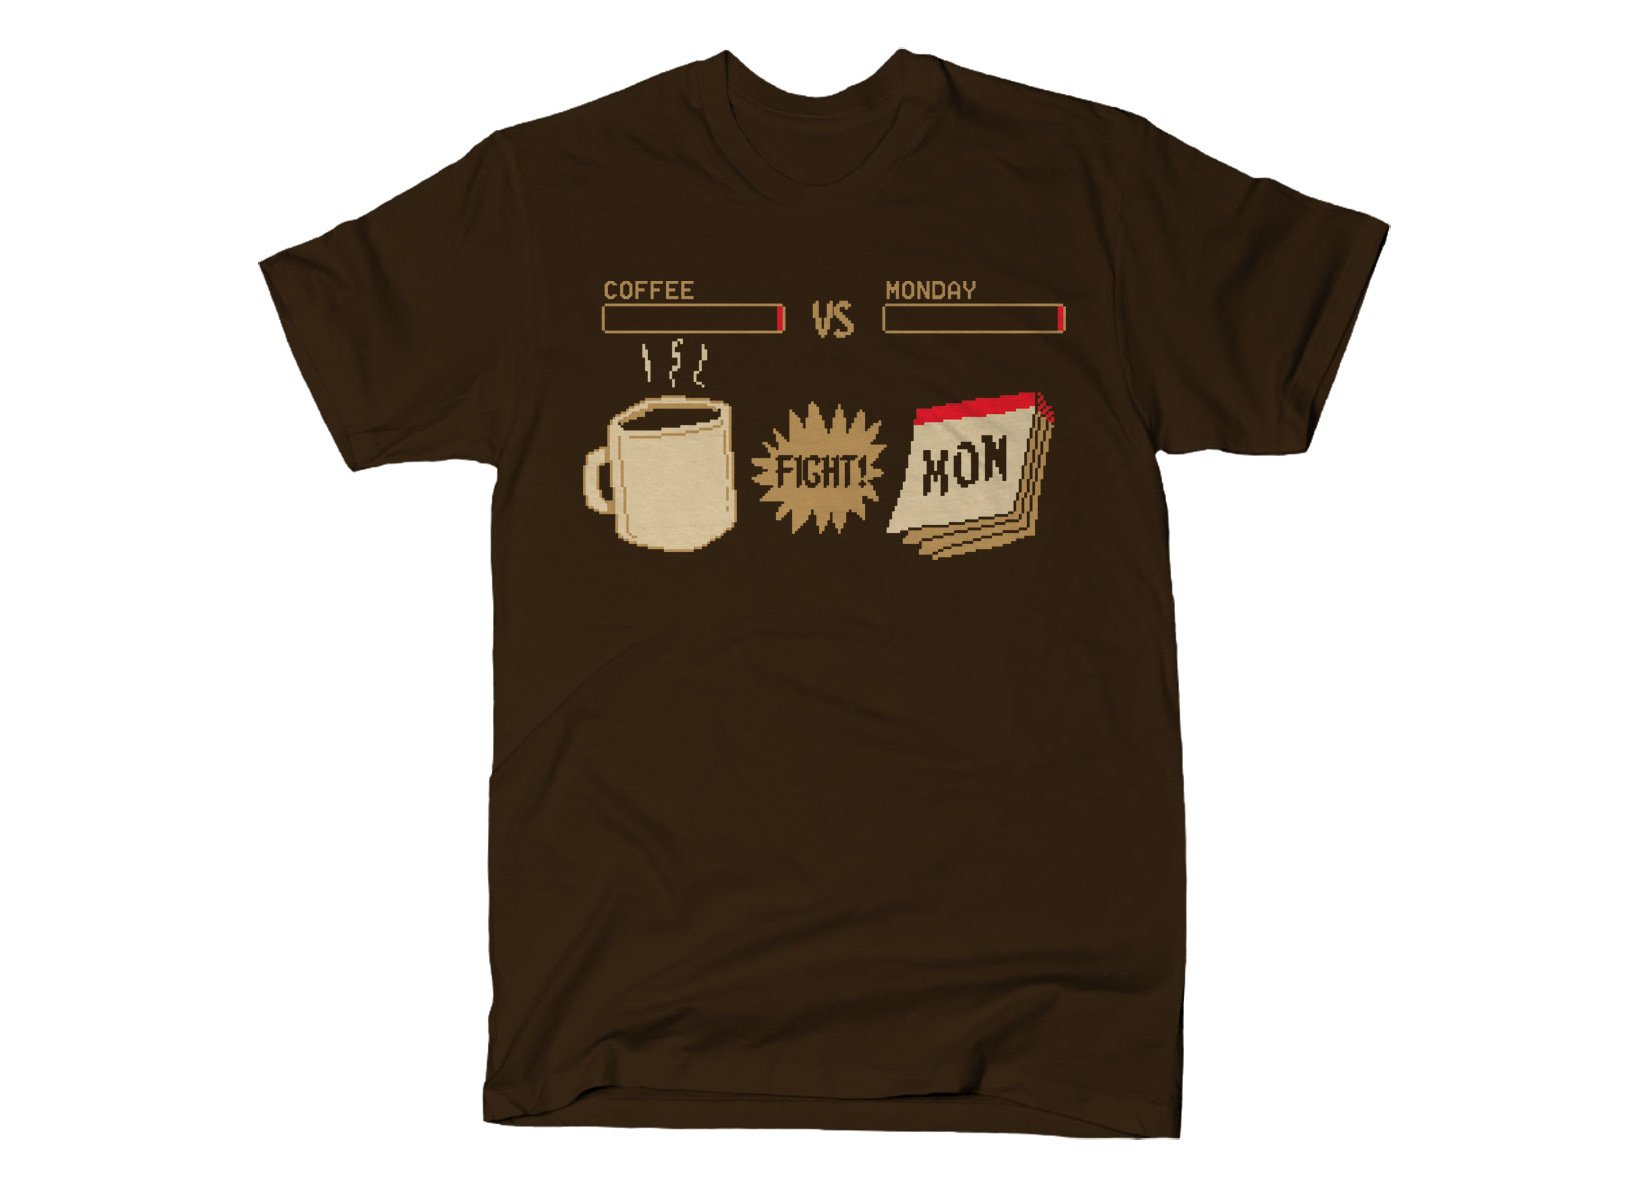 Coffee vs Monday on Mens T-Shirt